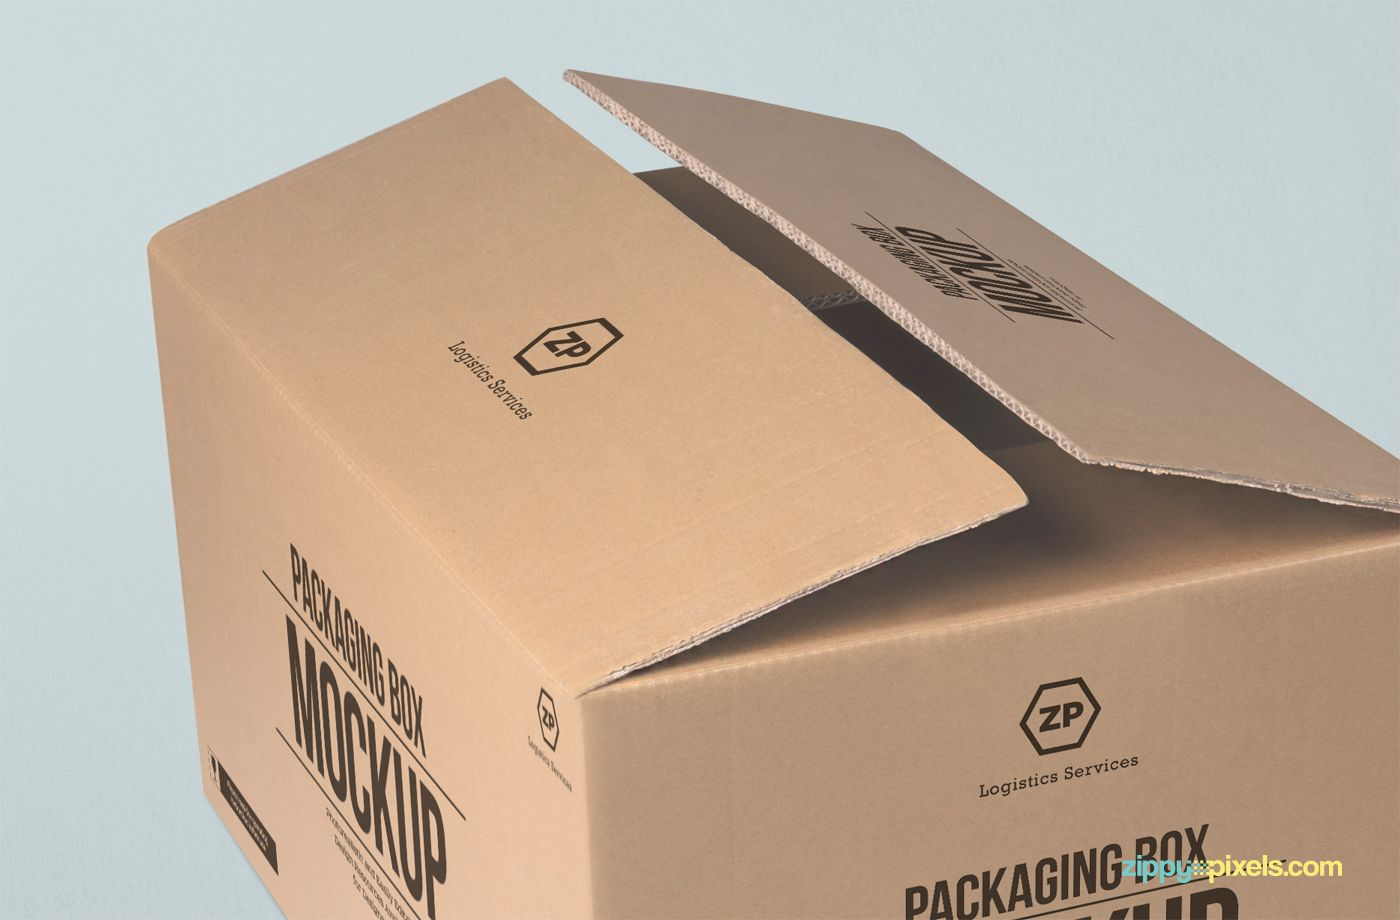 Download 2 Free Packaging Box Mockups on Behance